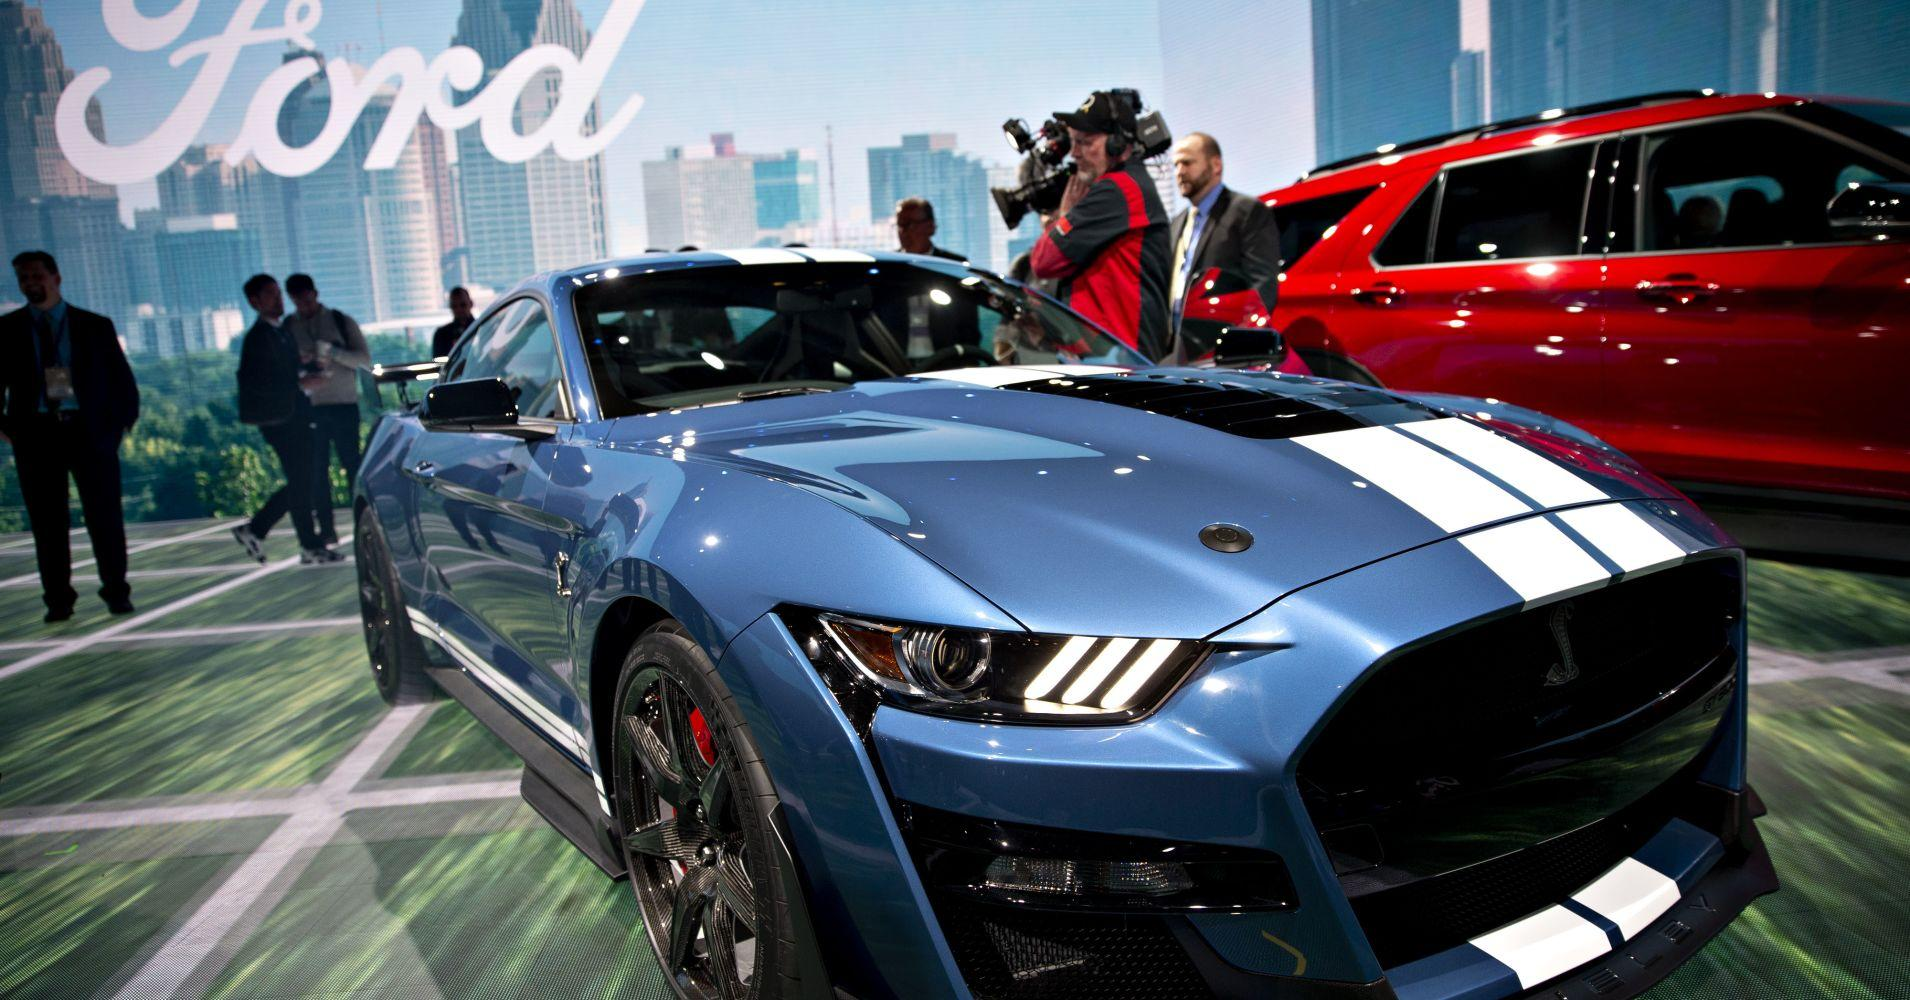 Ford ups the power on iconic mustang muscle car with new performance